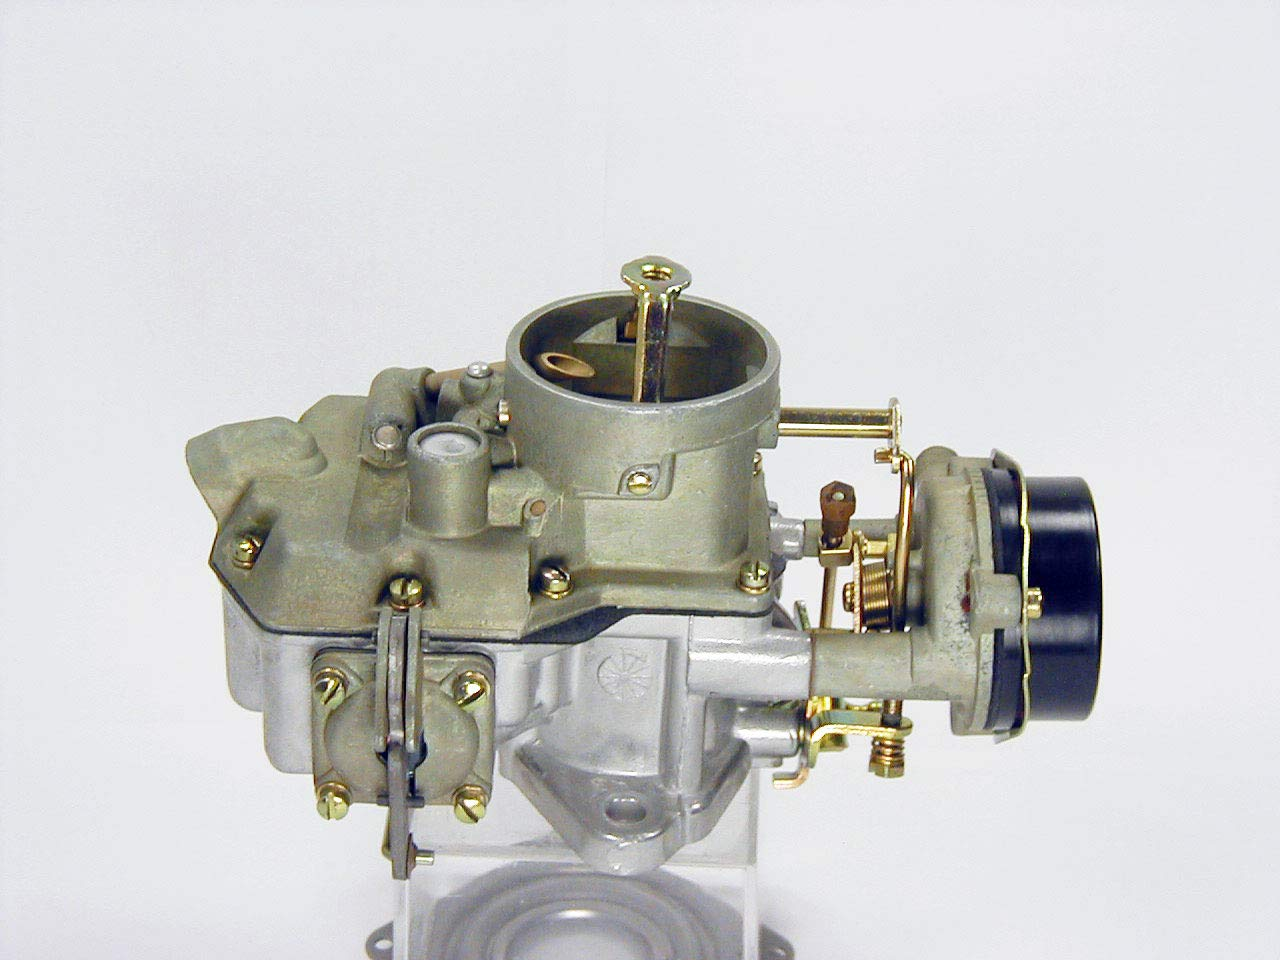 Amazon.com: REMANUFACTURED FORD 1 BBL CARBURETOR For 1963-1967 MUSTANG  FAIRLANE FALCON 170 200 MT - $150 CORE REFUND: Automotive